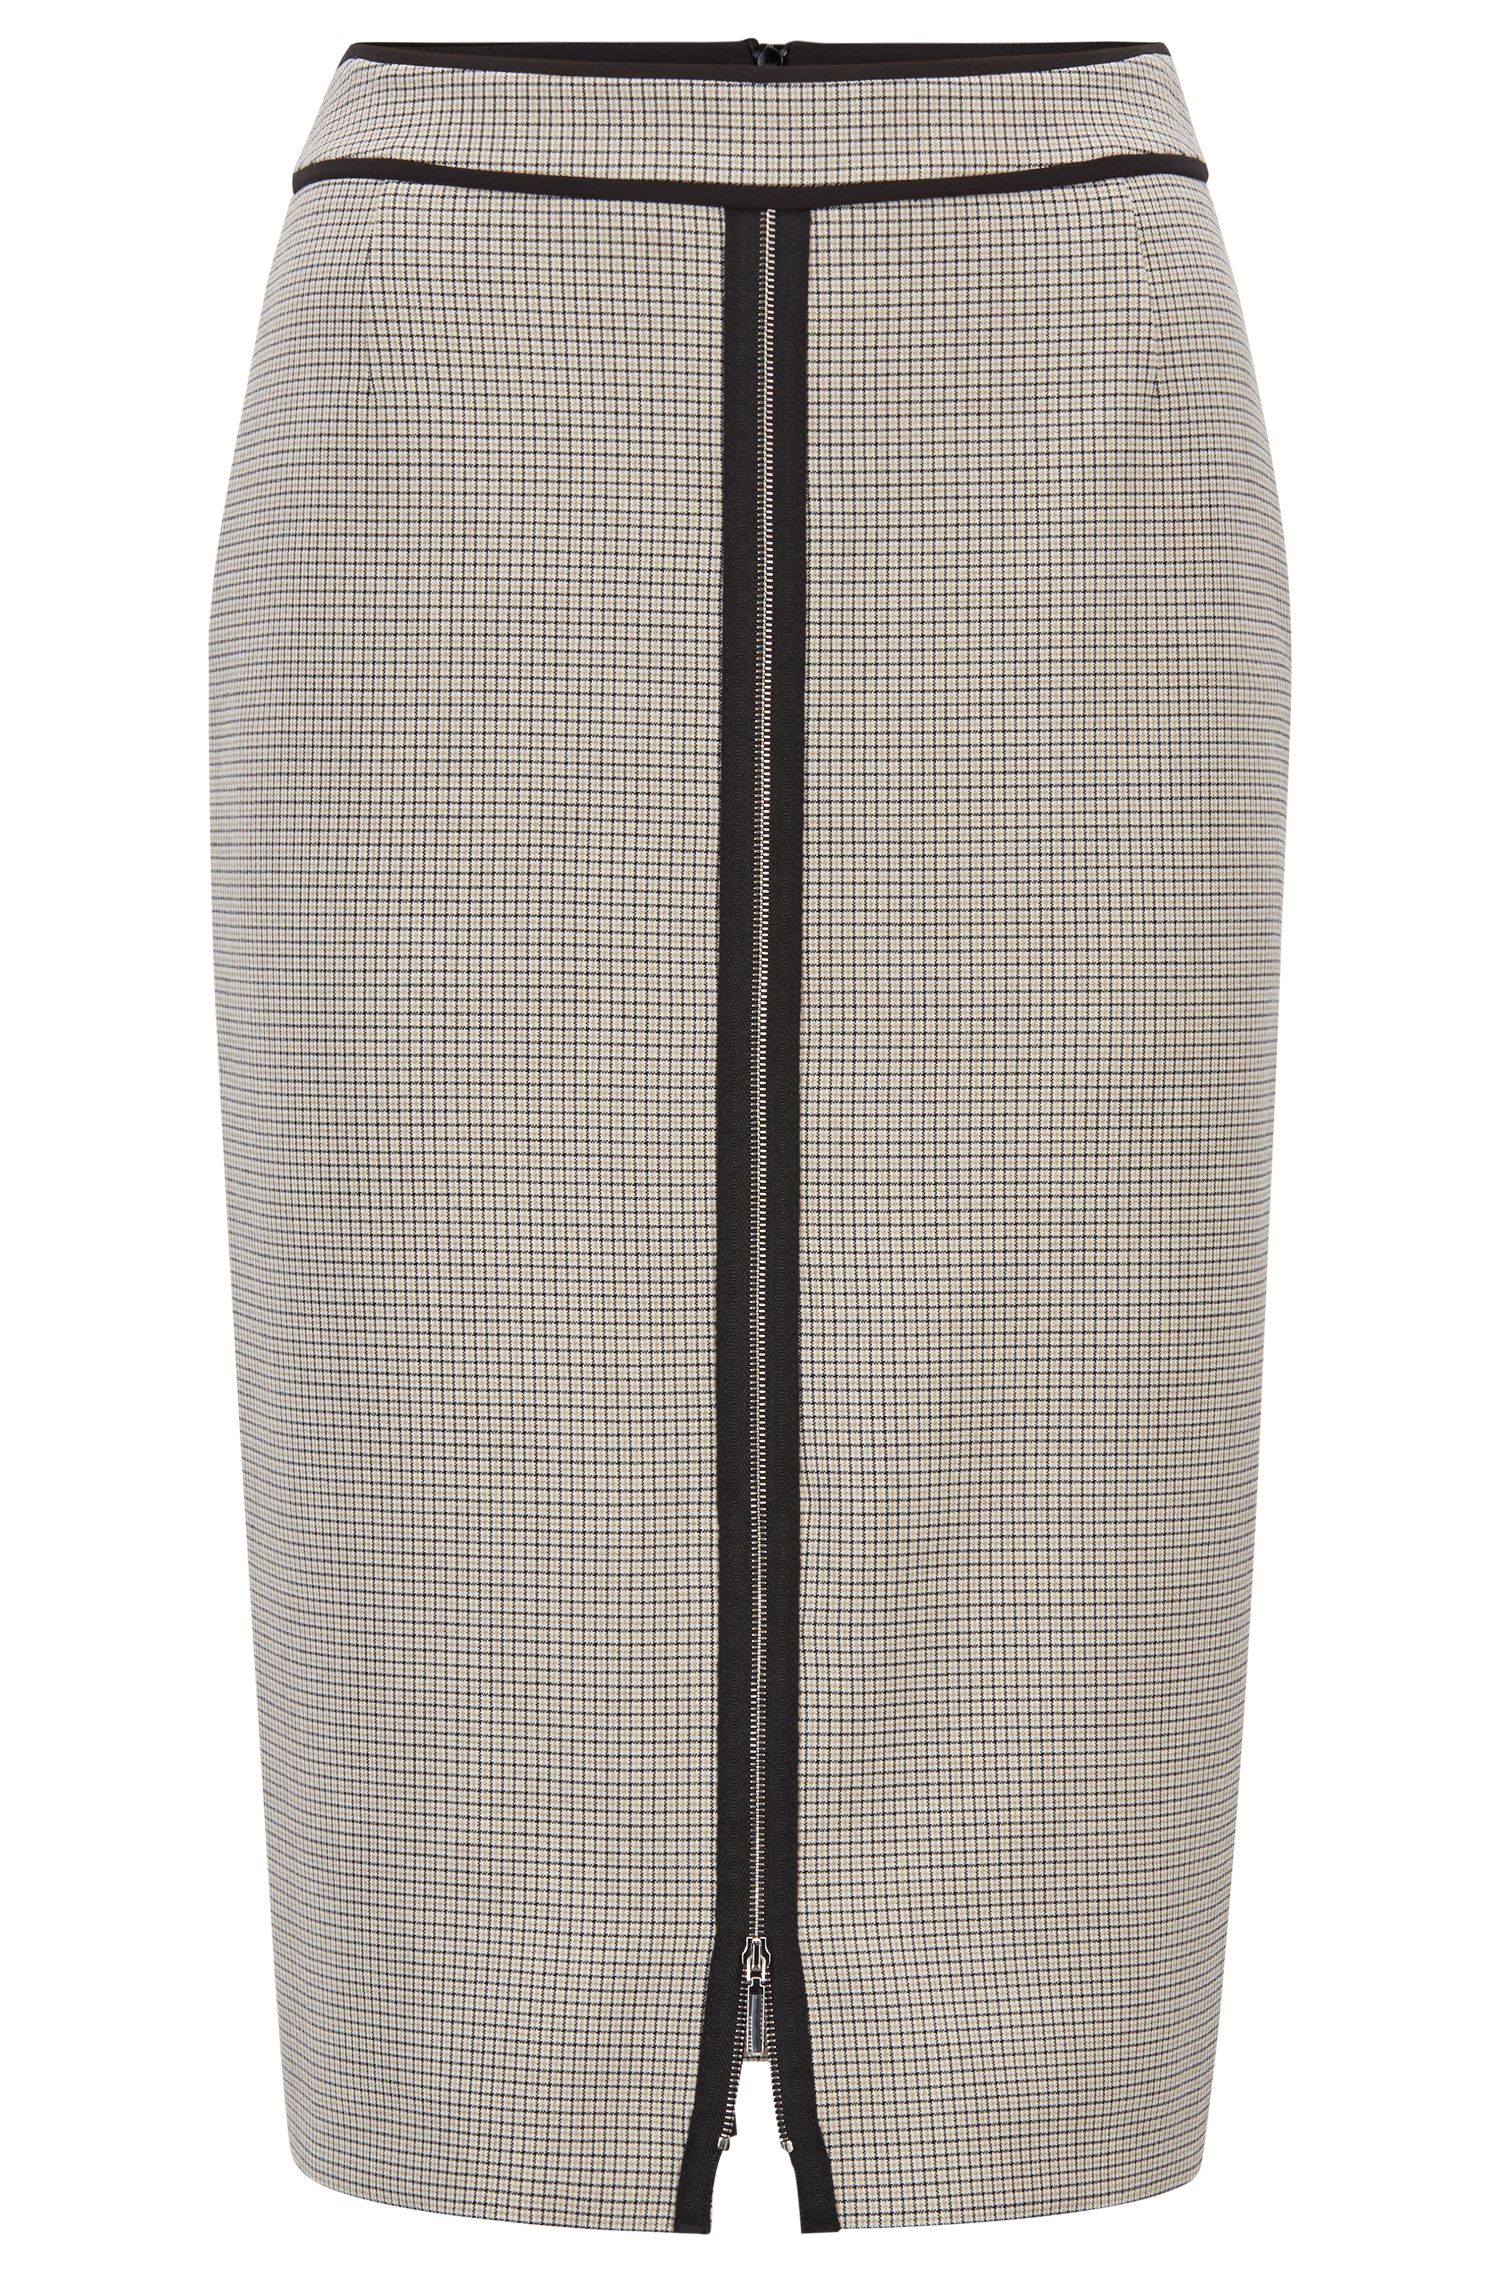 Pencil skirt in checked stretch fabric with front zipper, Patterned